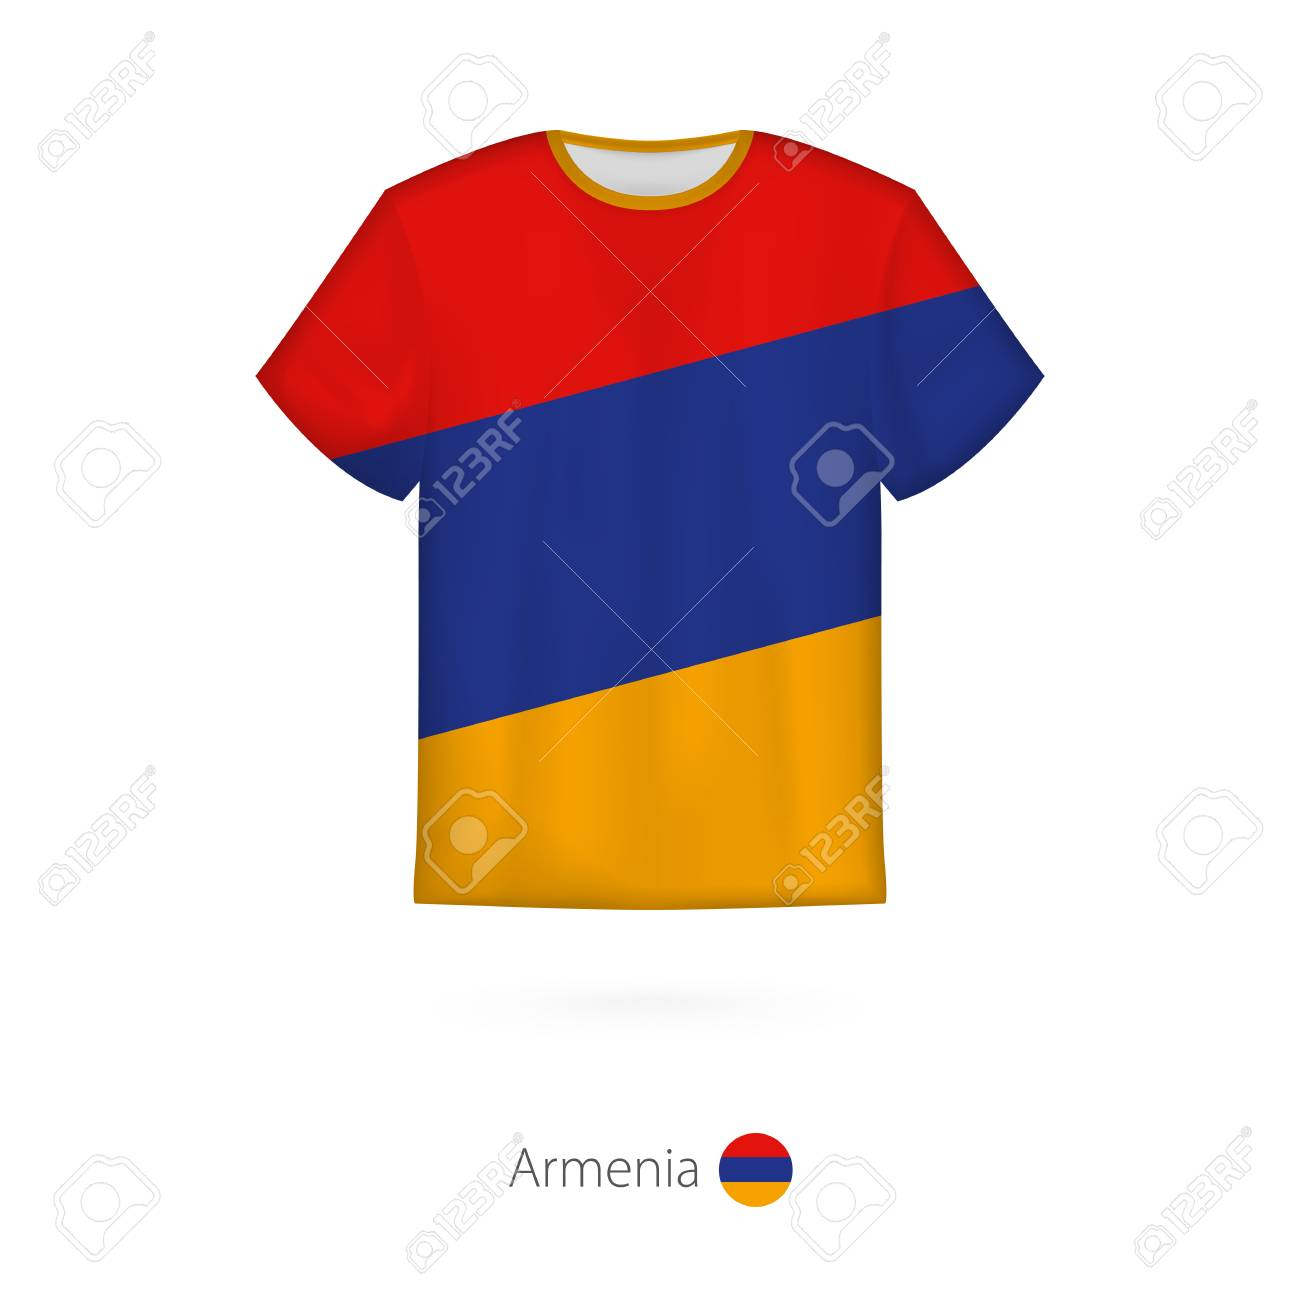 1ae915f77 T-shirt design with flag of Armenia. T-shirt vector template. Stock